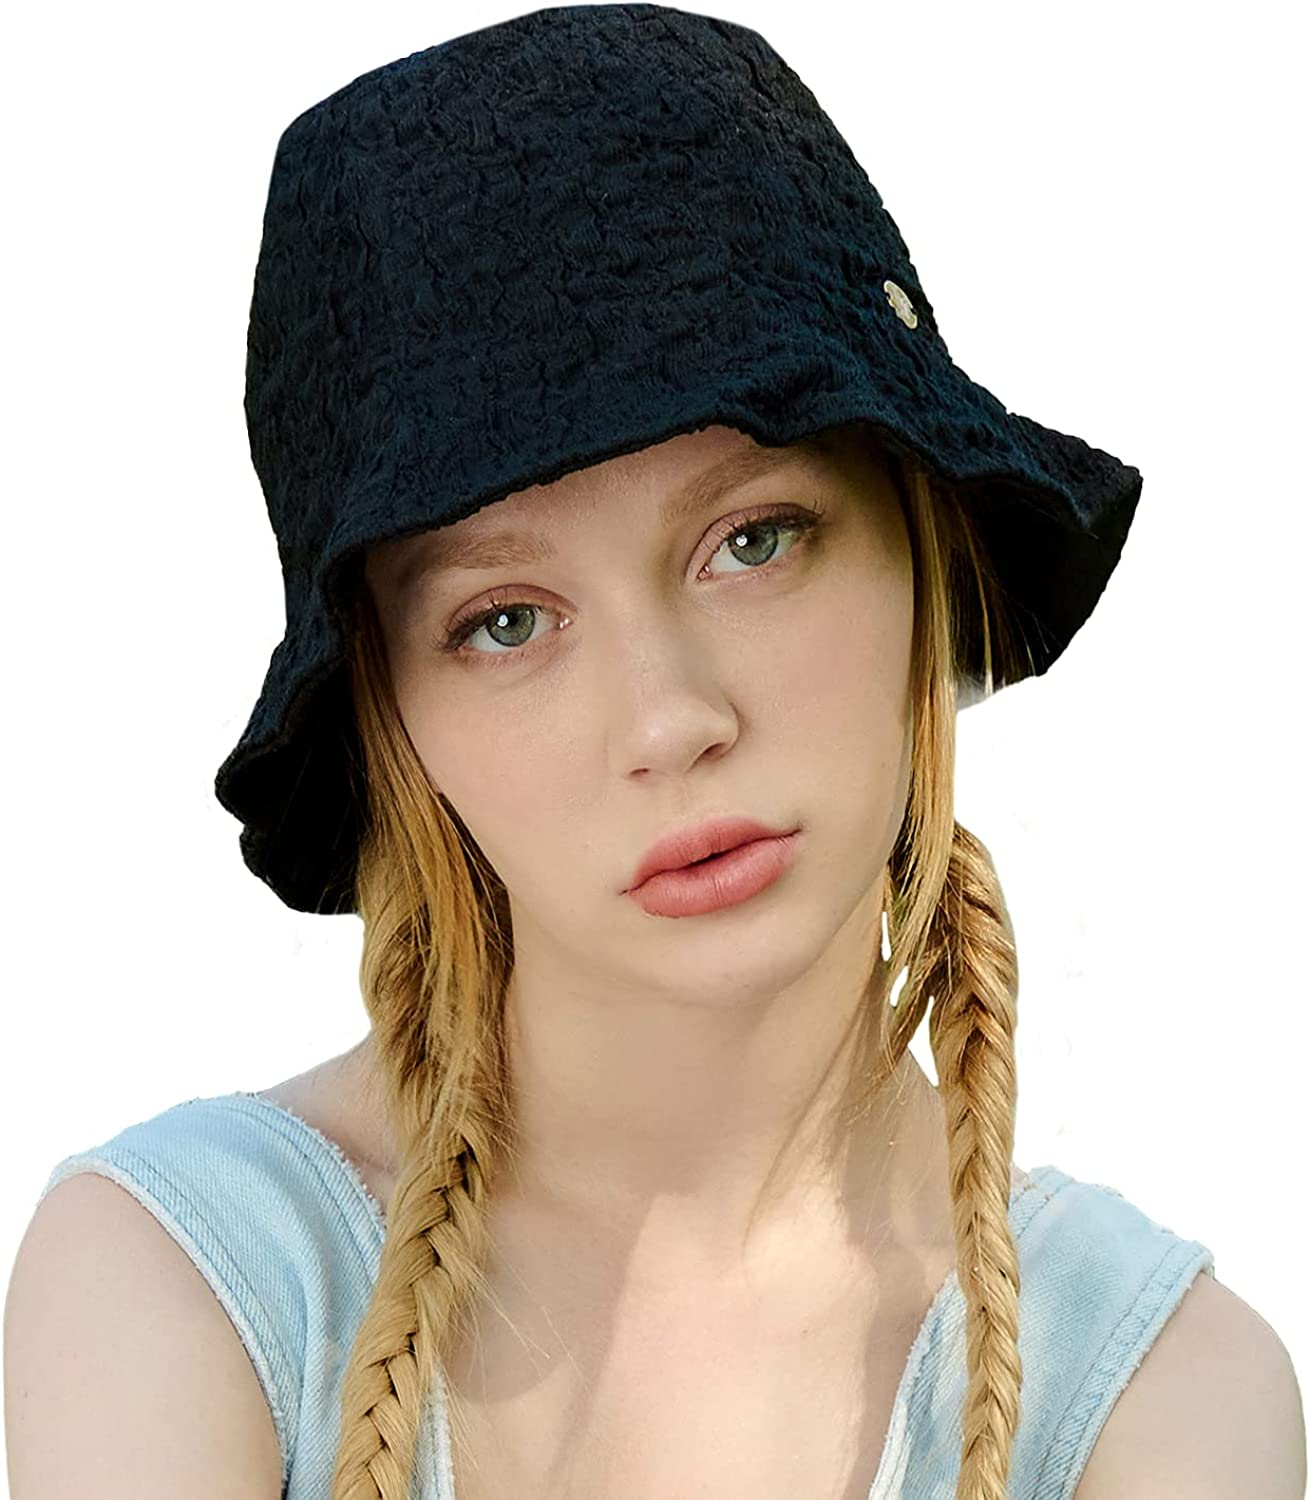 WHITE Fashionable SANDS MOJA Oakland Mall Bucket Hat Wrinkled